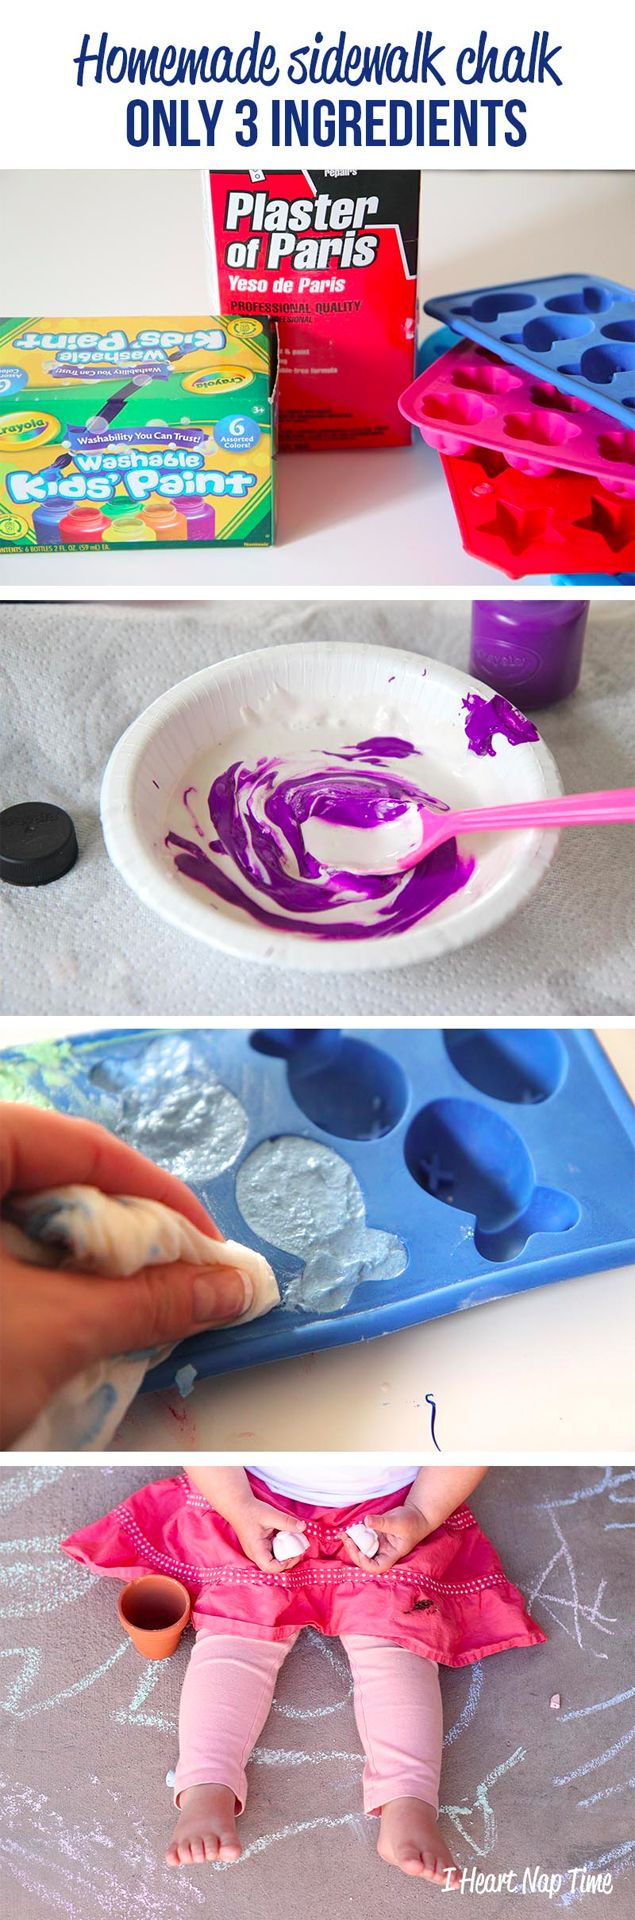 make your own sidewalk chalk - fun shapes and colors.